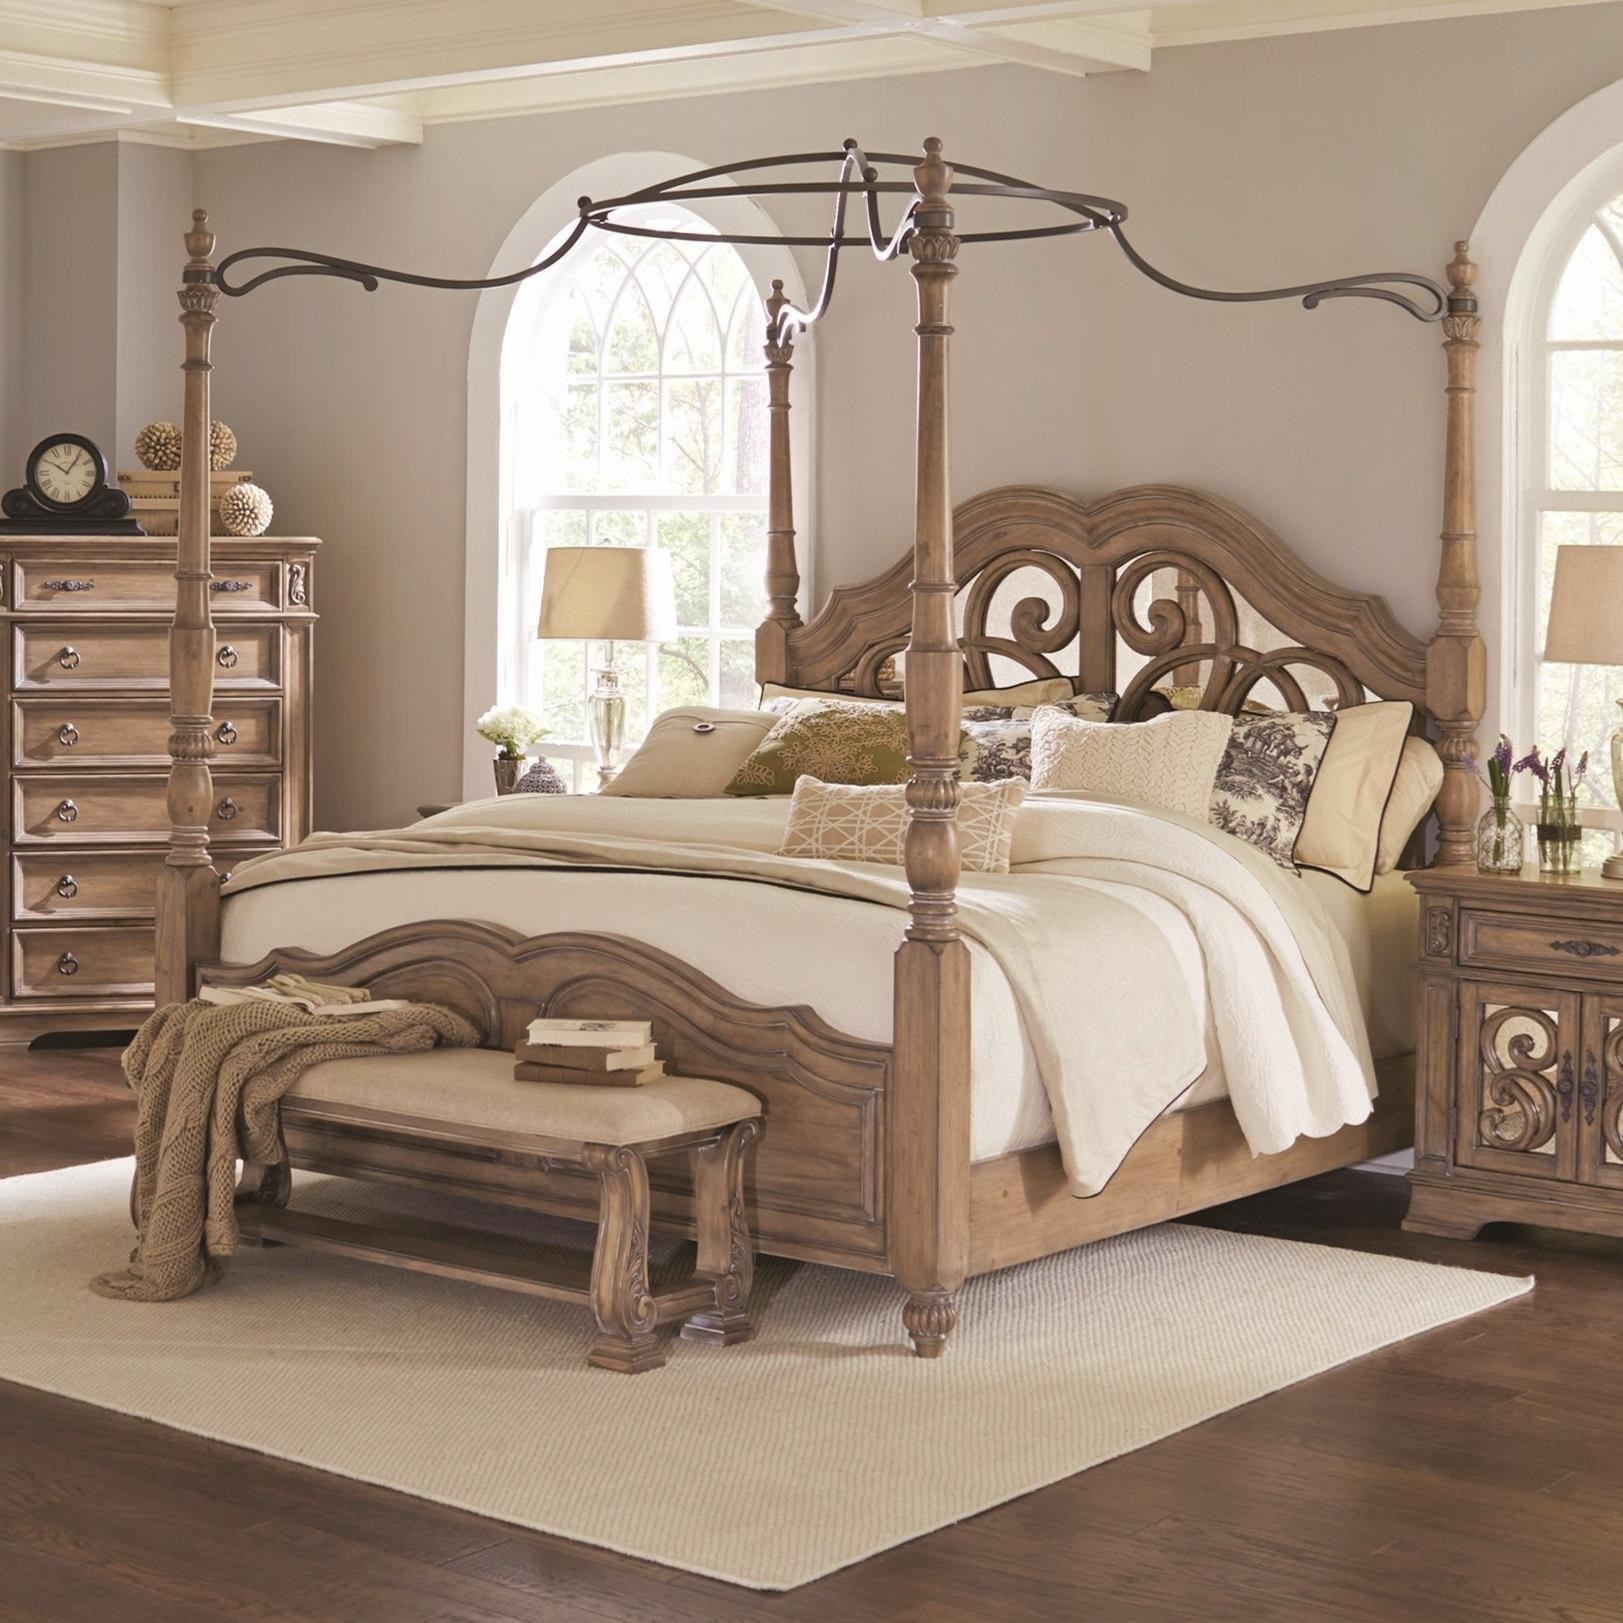 coaster ilana california king canopy bed with mirror back headboard